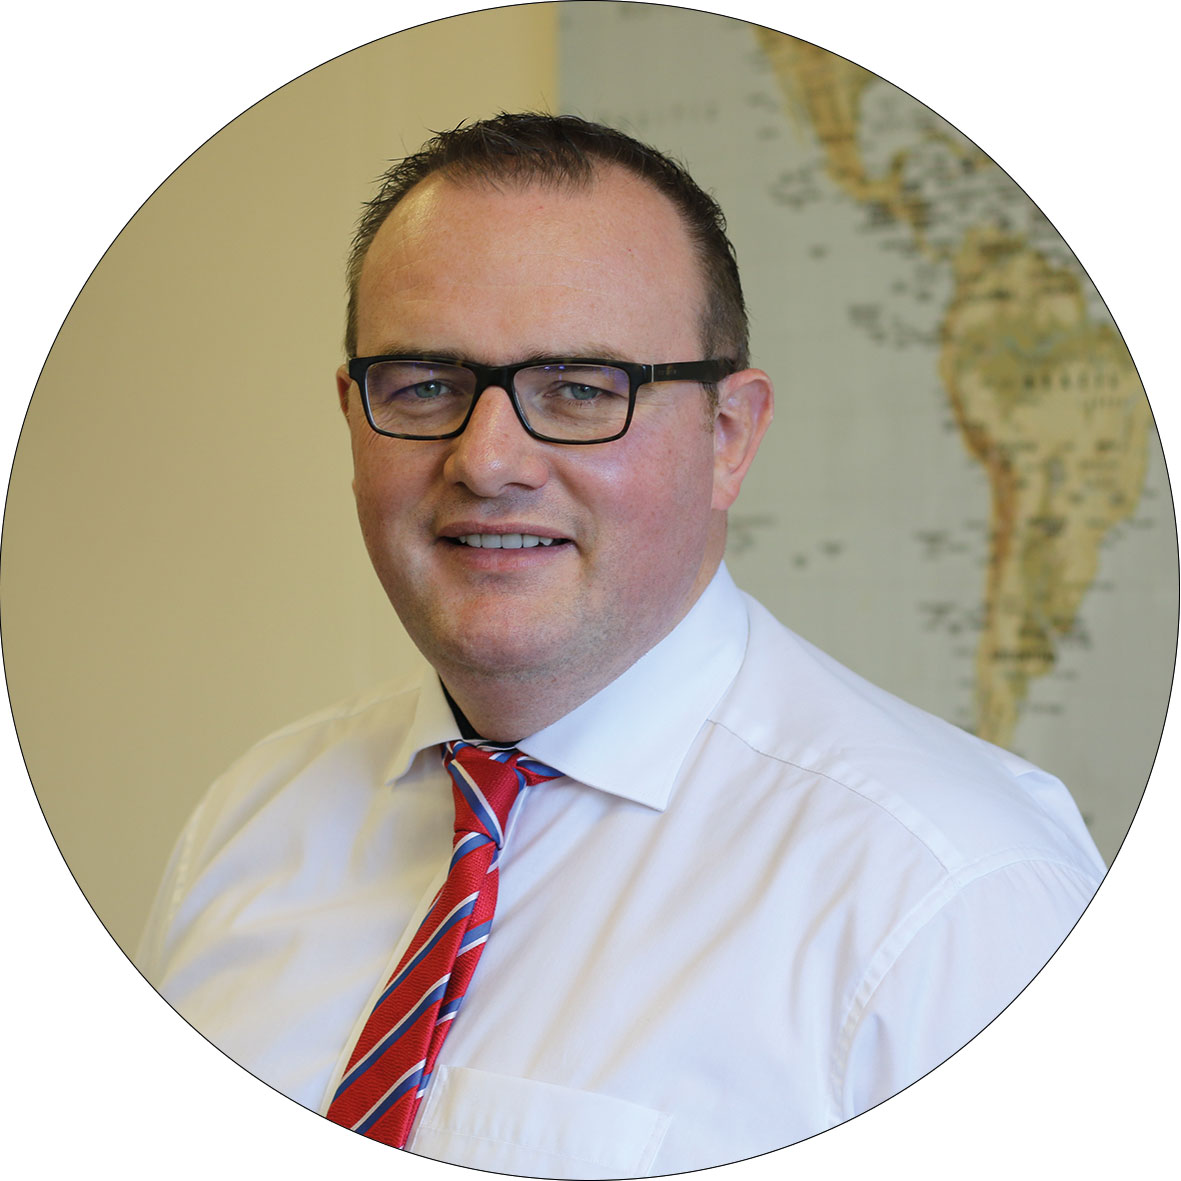 TIM GLENN - MANAGING DIRECTORTim is a Chartered Accountant with over 10 years experience at board level in industry following his responsibilities as Associate Director with one of the Big 4 Accounting firms.tglenn@ttc-colours.com